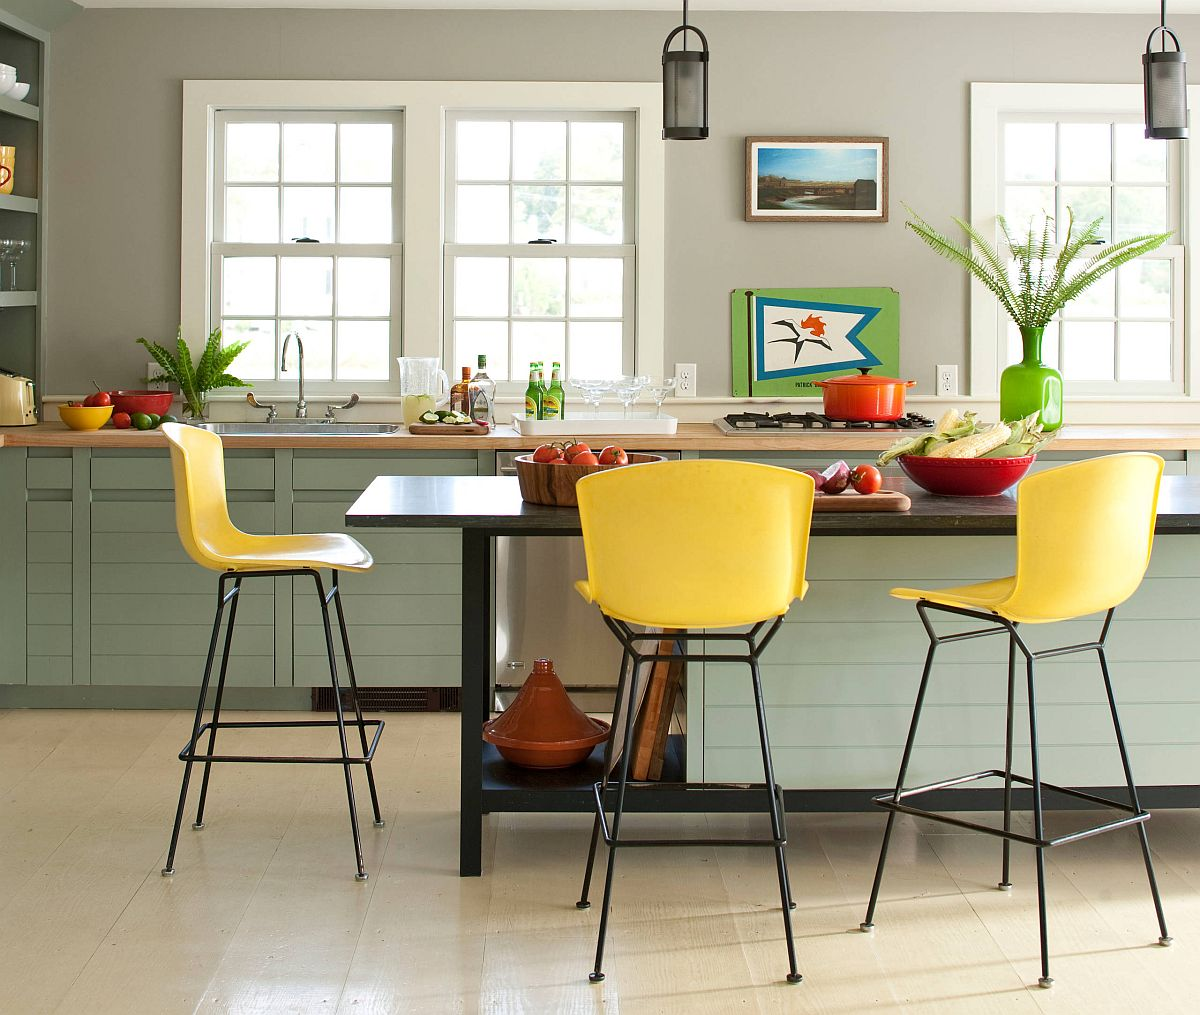 Easy-way-of-adding-green-and-yellow-to-the-kitchen-with-accents-and-decor-78035